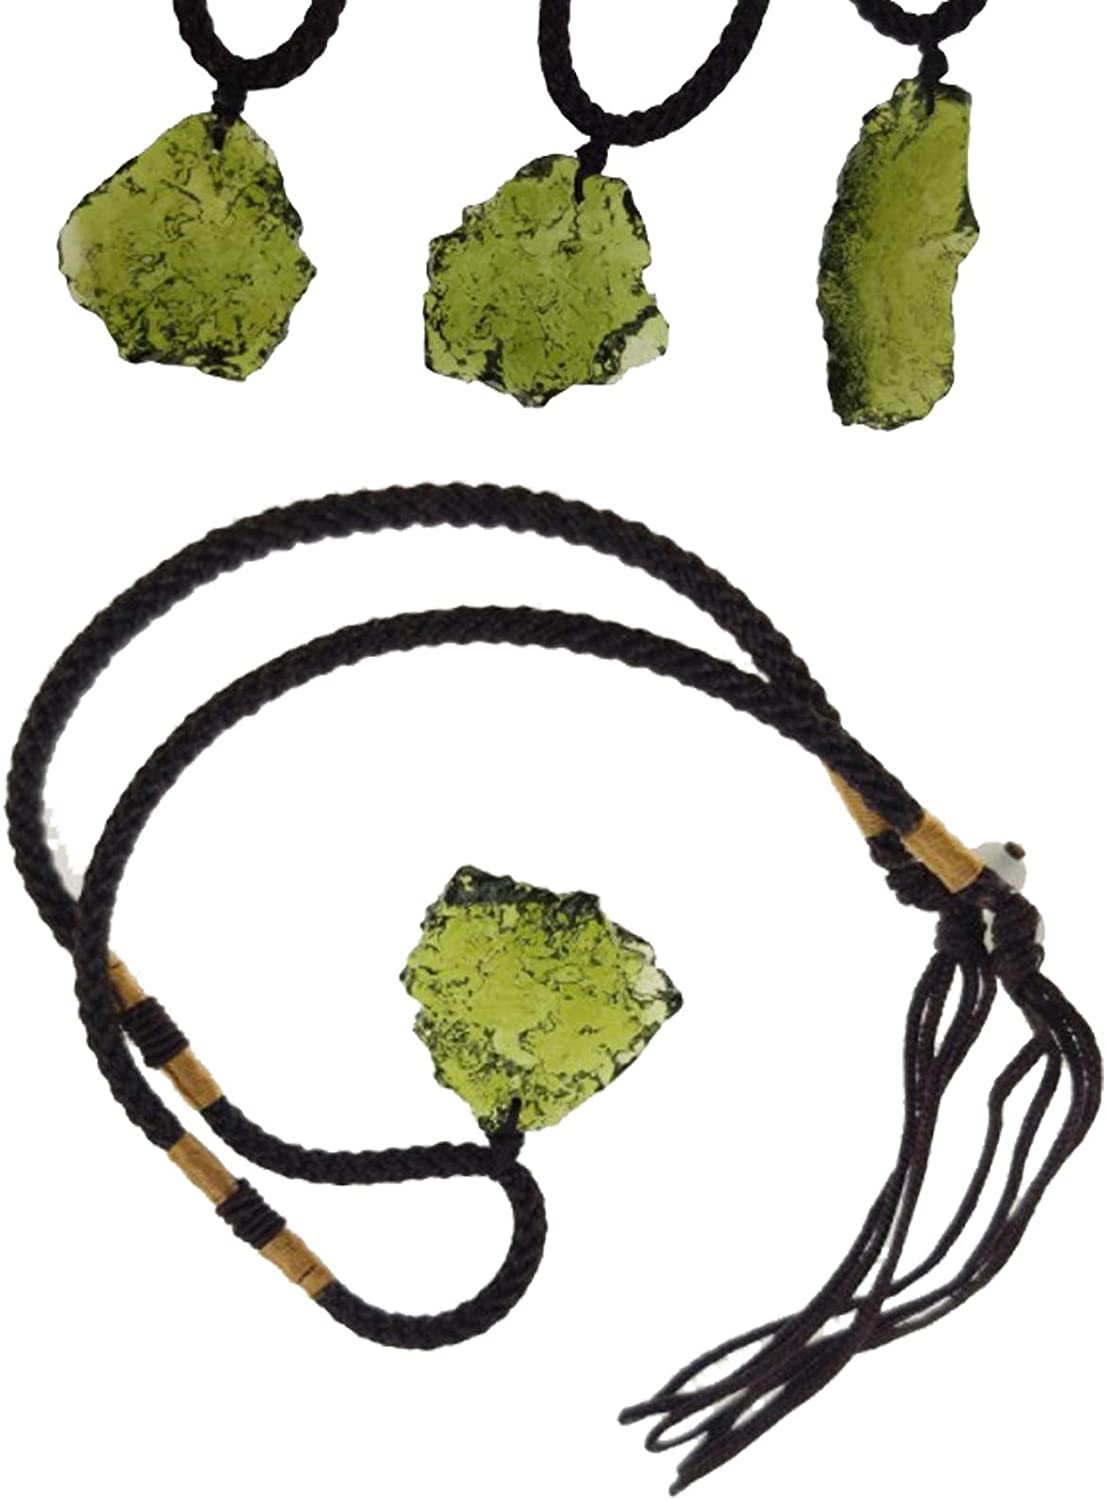 Natseekgo Unisex Moldavite Crystal Necklace with Chain, Irregular Energy Stone Pendant Artificial Raw Rough Crystal Energy Stone Represent for Hope